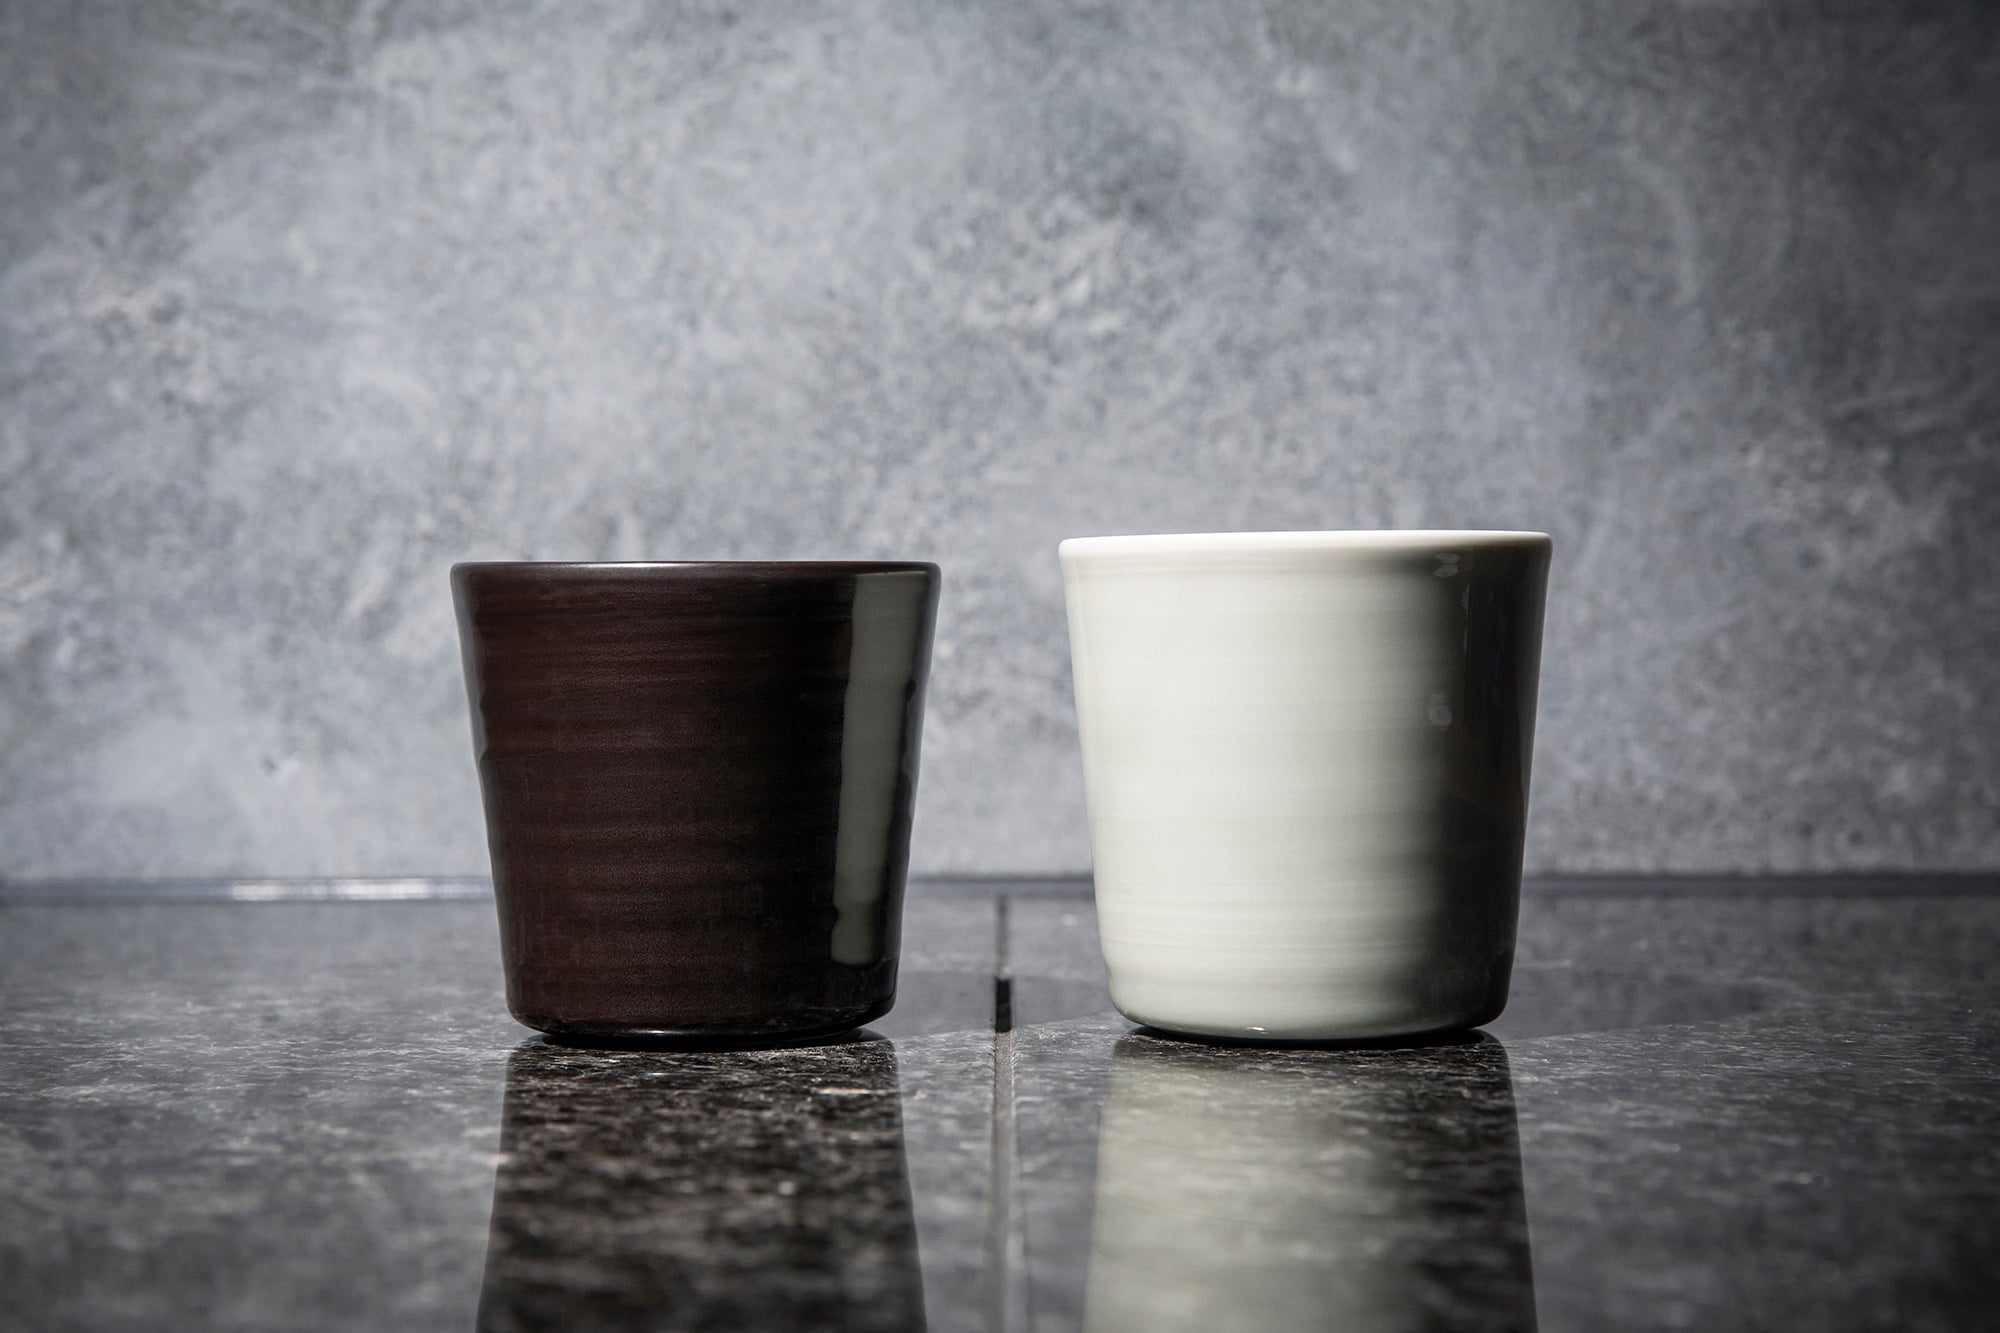 The porcelain cup is a collaboration work by Ingegerd Raman and Koransha from Arita.